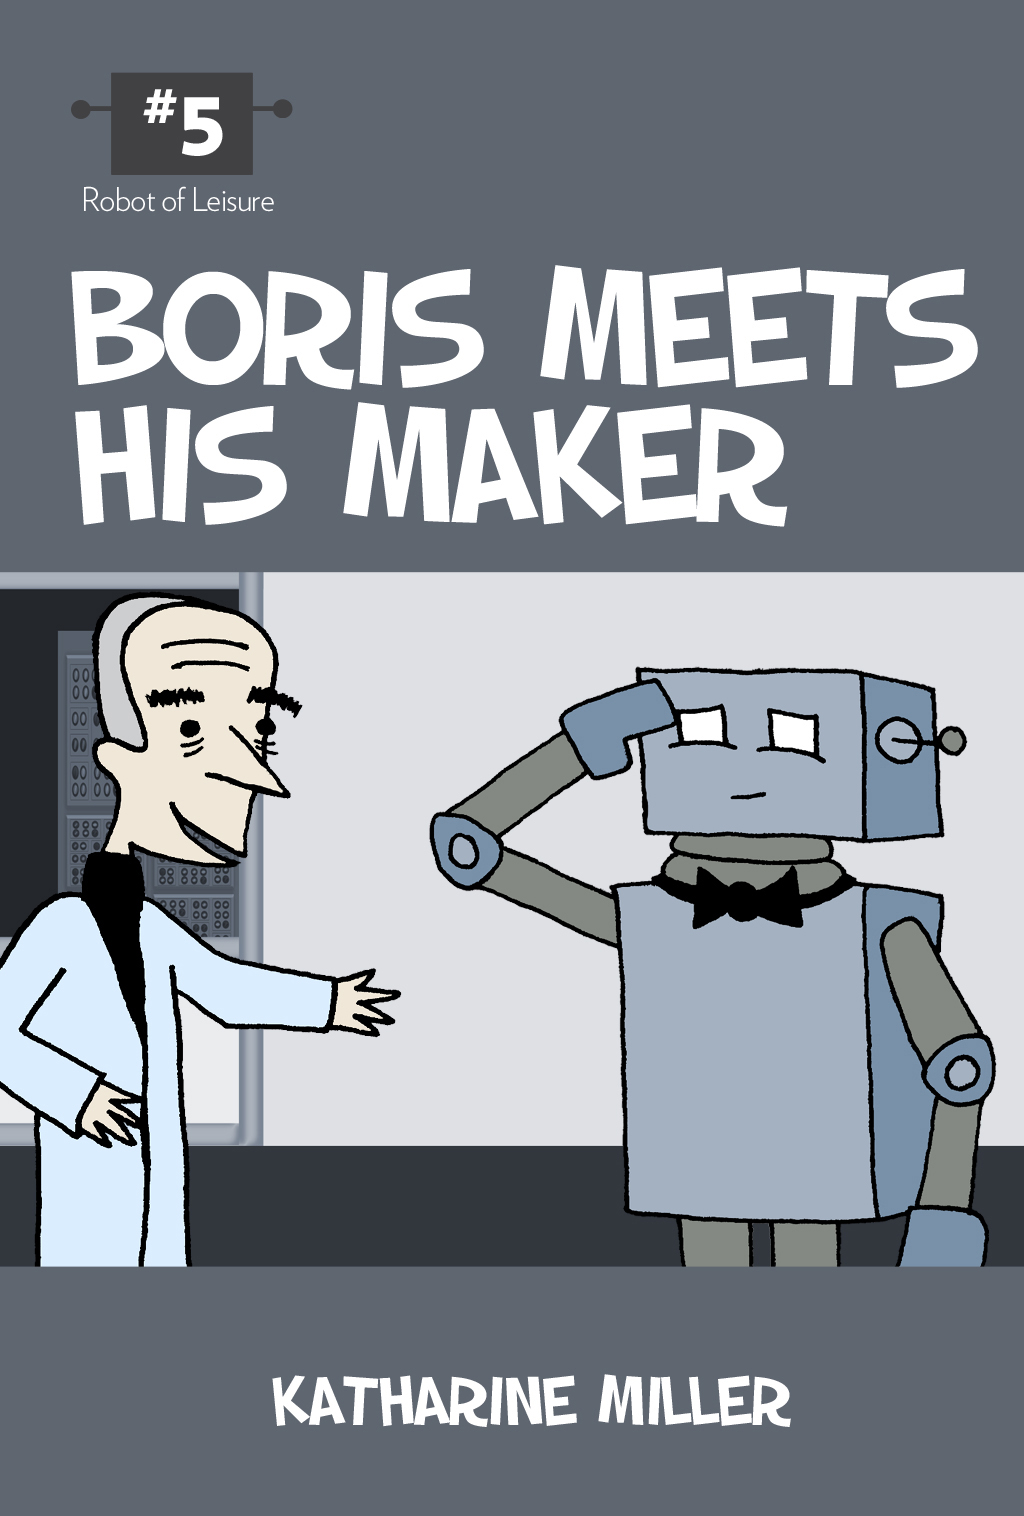 Boris Meets His Maker